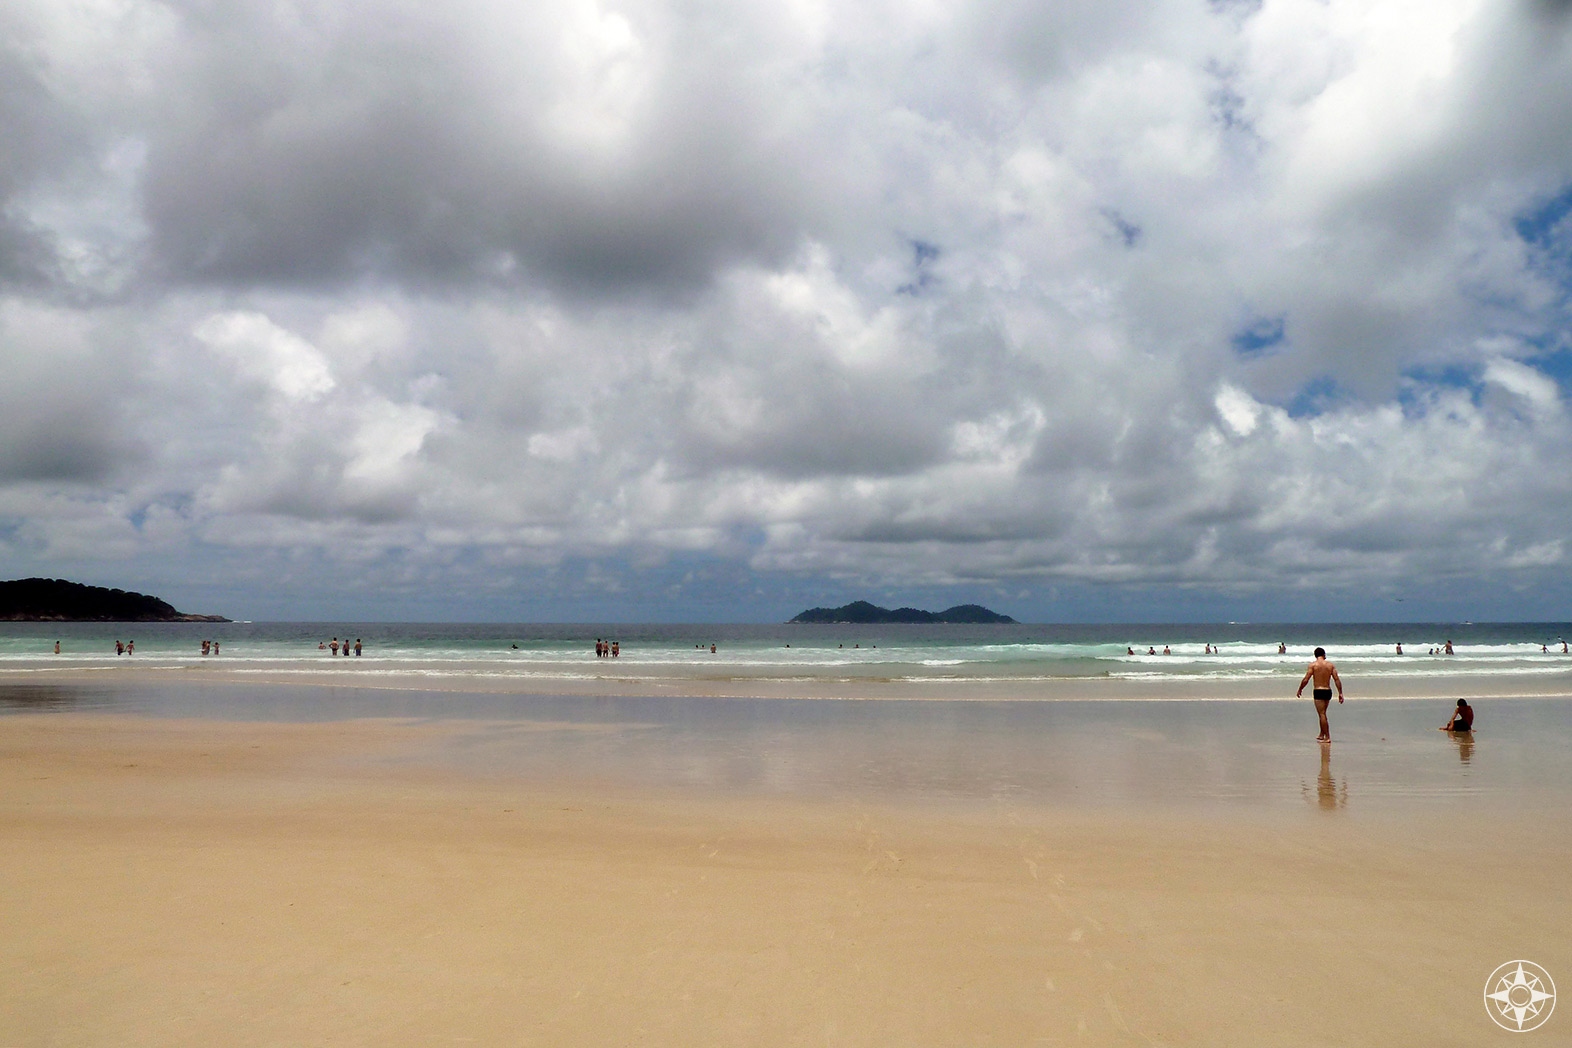 Vast Lopes Mendes Beach is rumored to be one of the most beautiful beaches in the world according to Vogue and Lonely Planet.